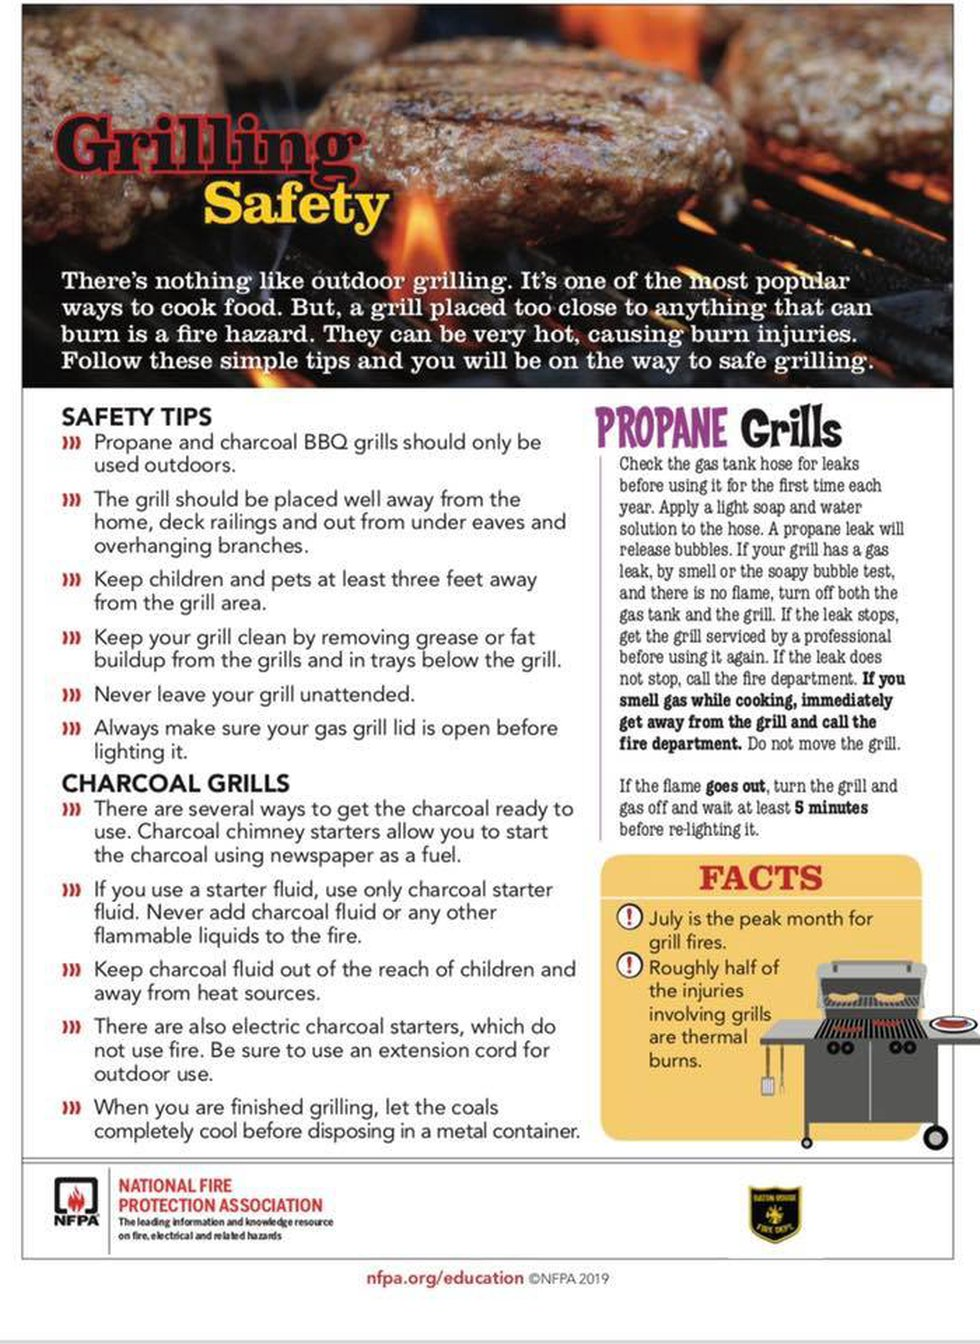 Baton Rouge Fire Department grilling safety.